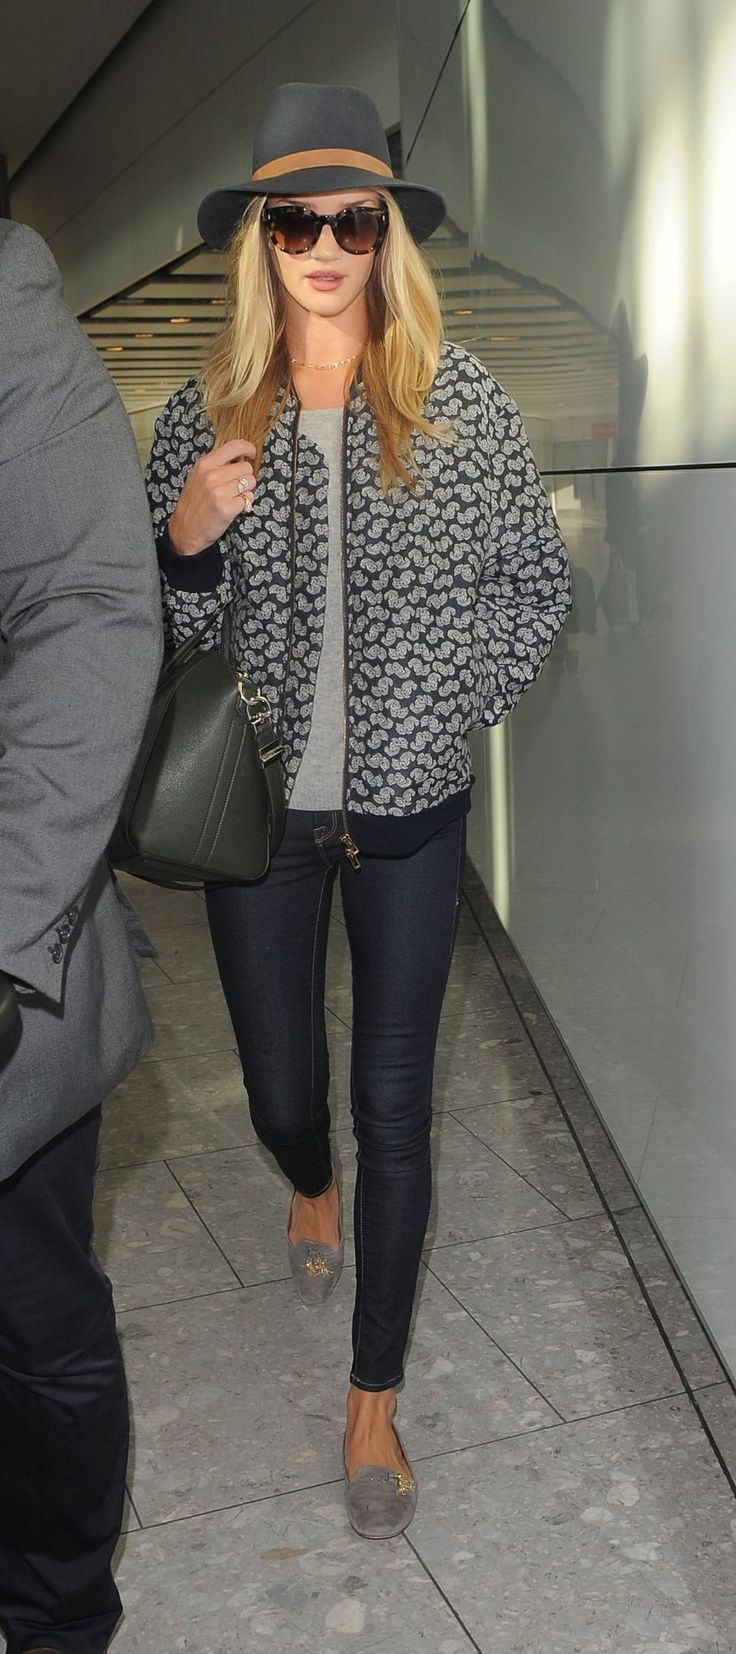 Rosie Huntington Whiteley looking gorgeous in a printed bomber, paired with simple, neutral accessories and dark shades.